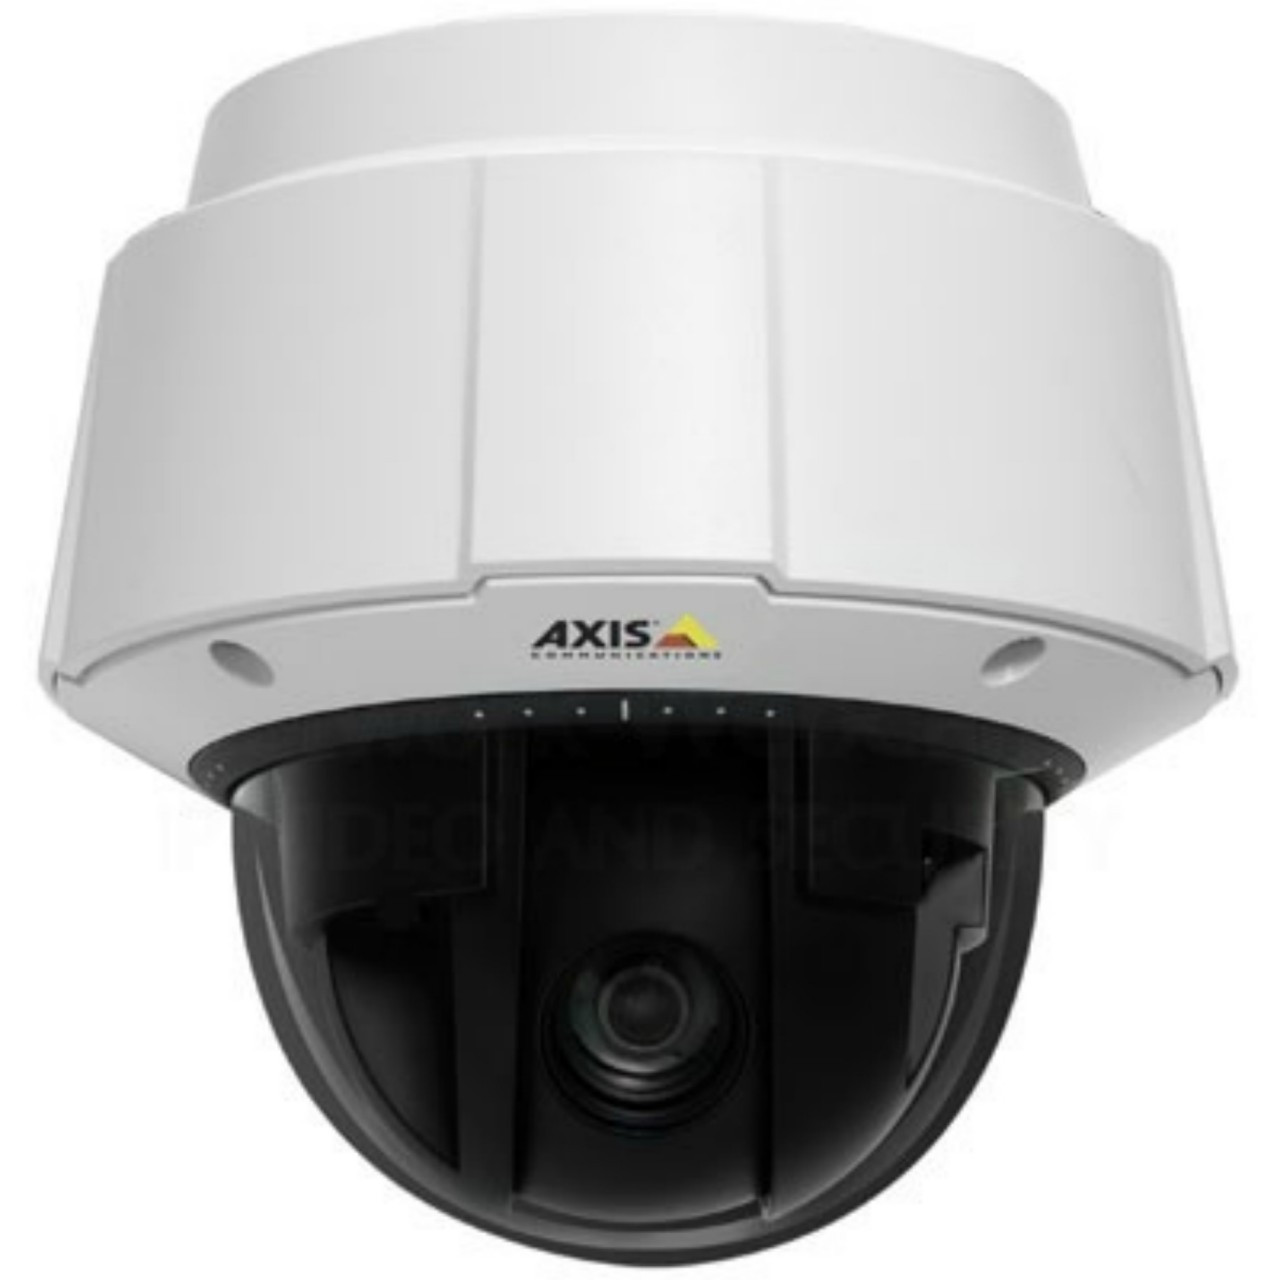 axis q6032 0357 004 ptz dome network camera. Black Bedroom Furniture Sets. Home Design Ideas